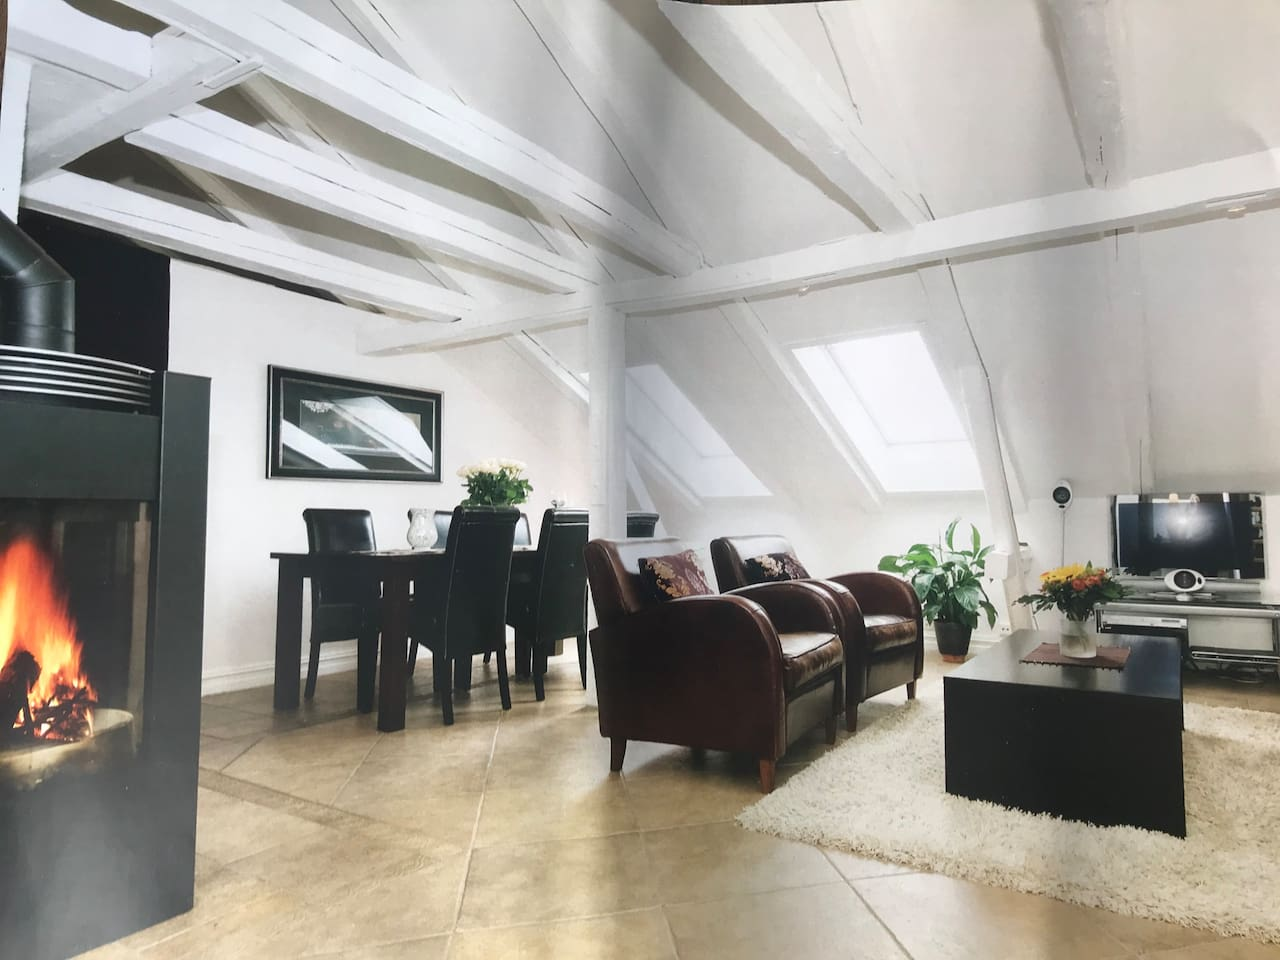 This is a penthouse apartment with complete privacy (no view from the outside)